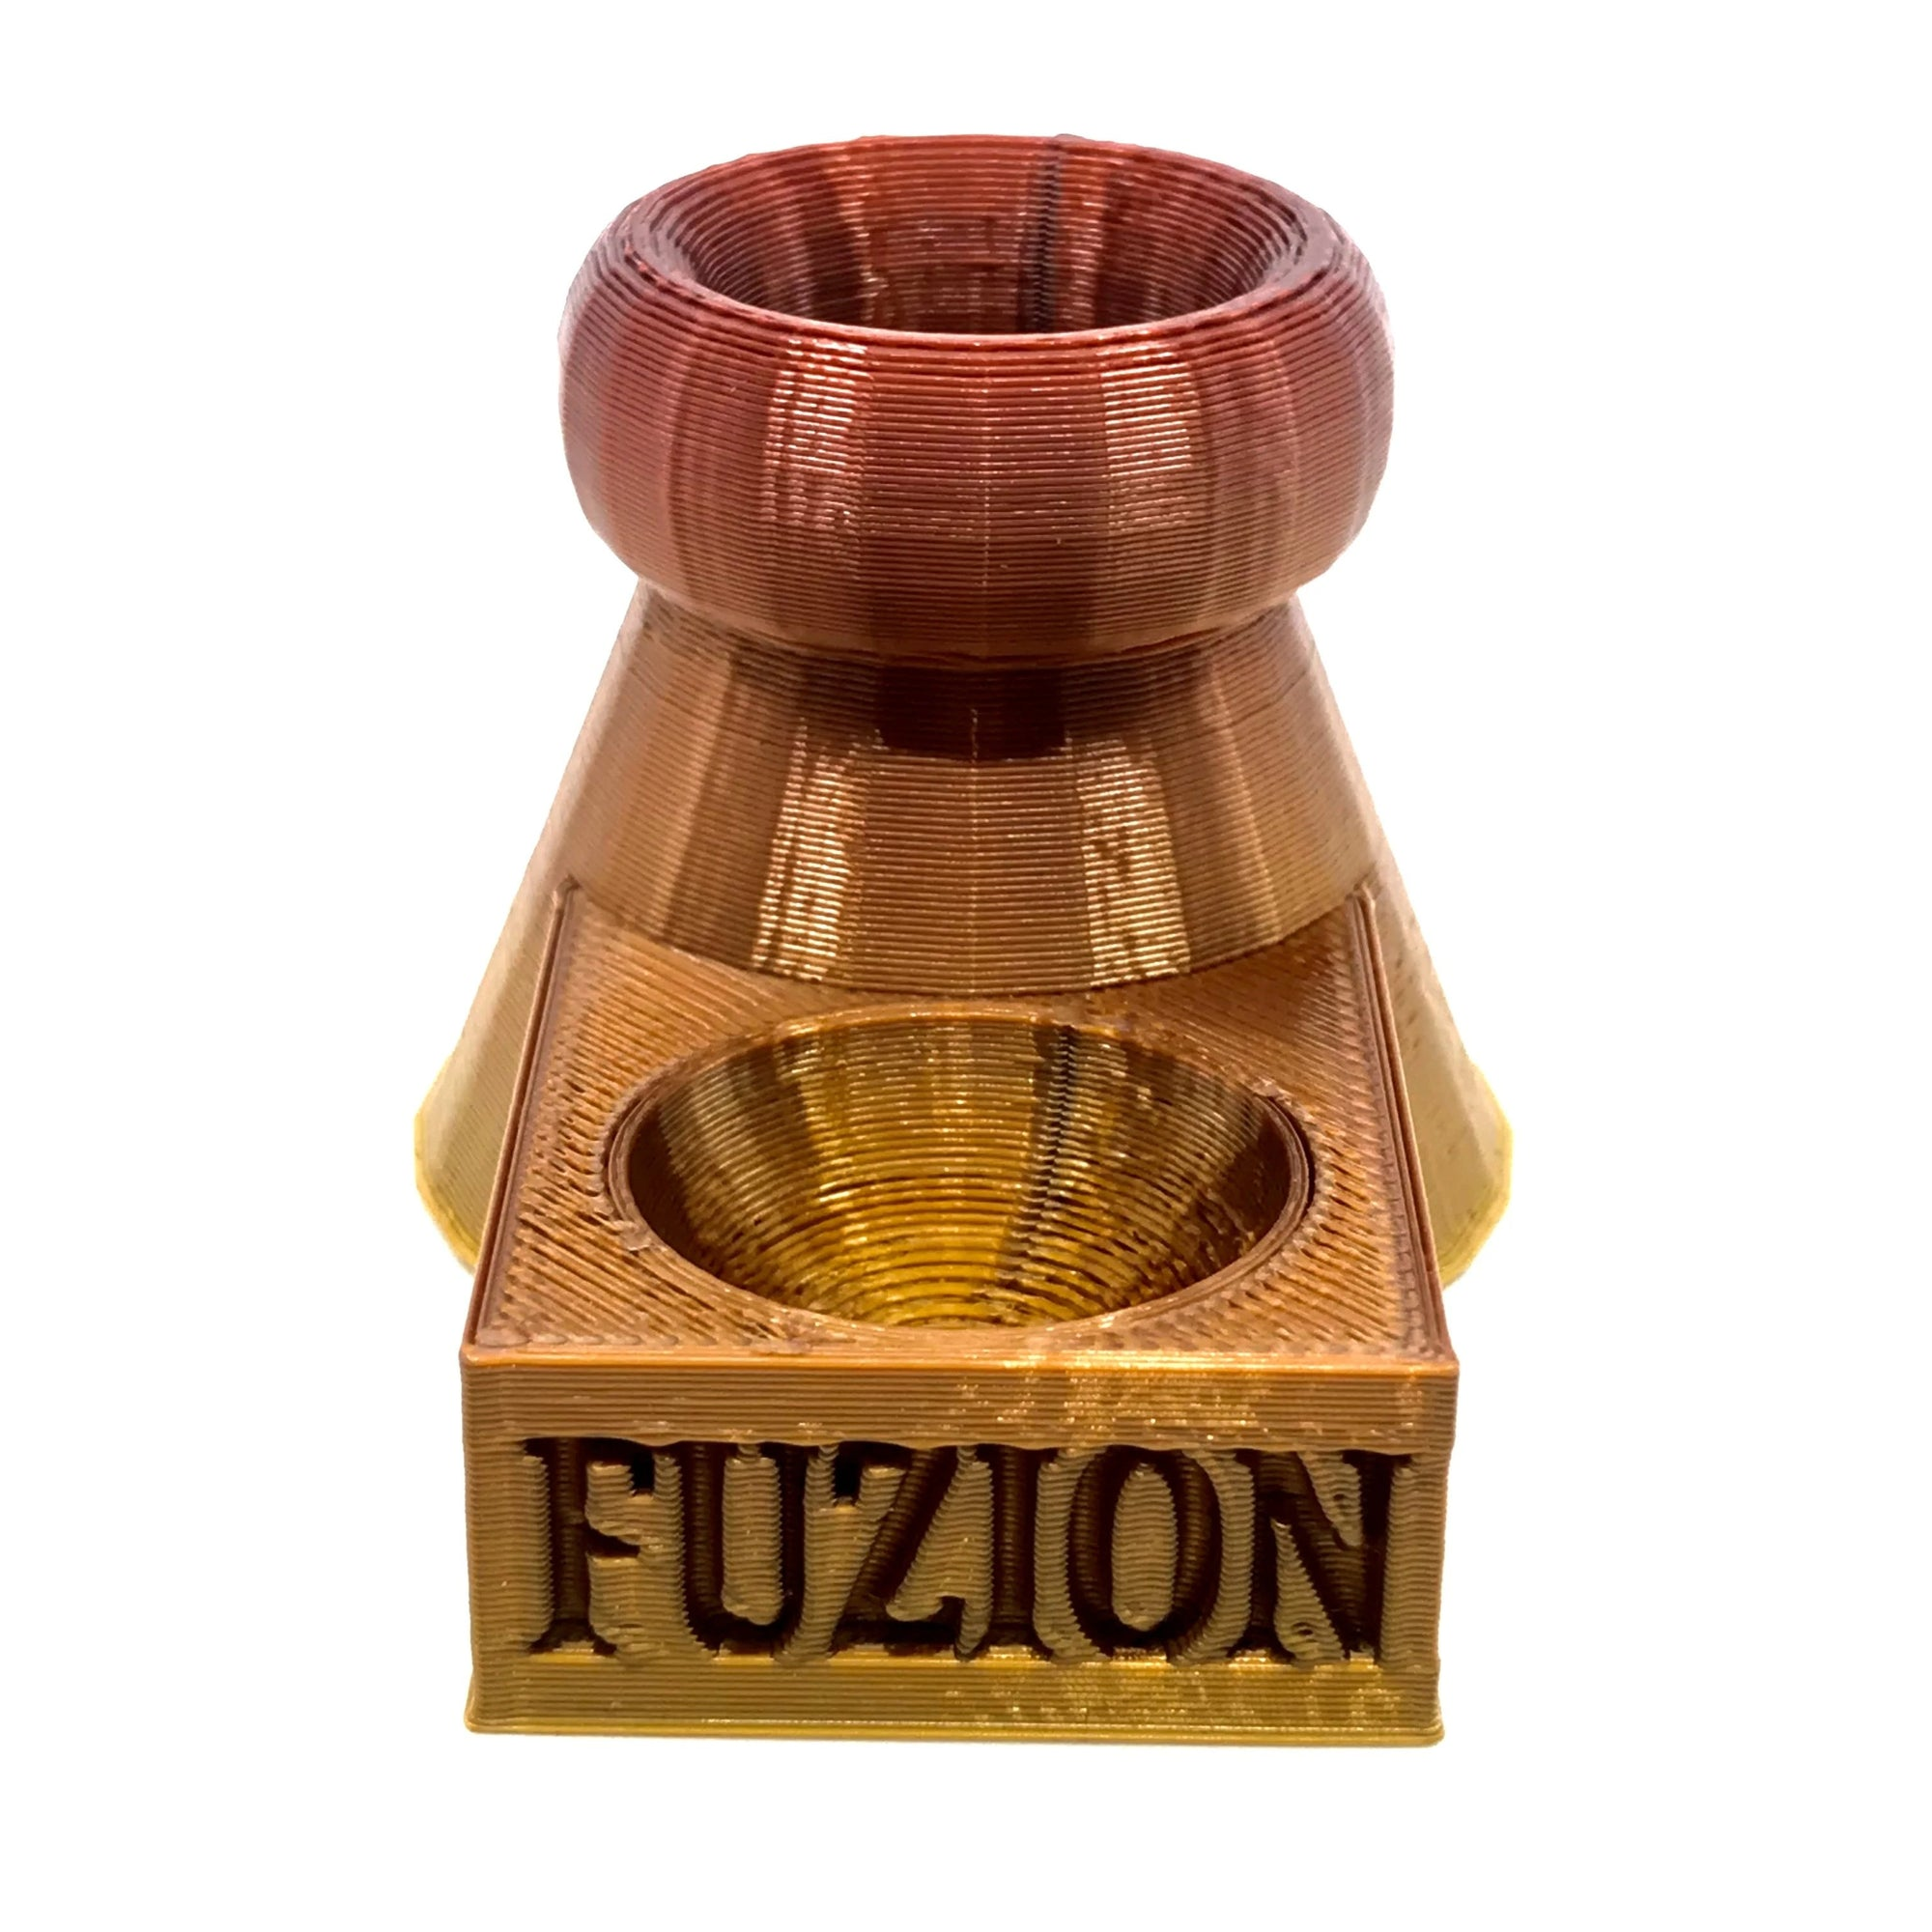 FUZION 3D Printed Bubble Cap and Terp Pearl Stand (All Colors Listed Below)